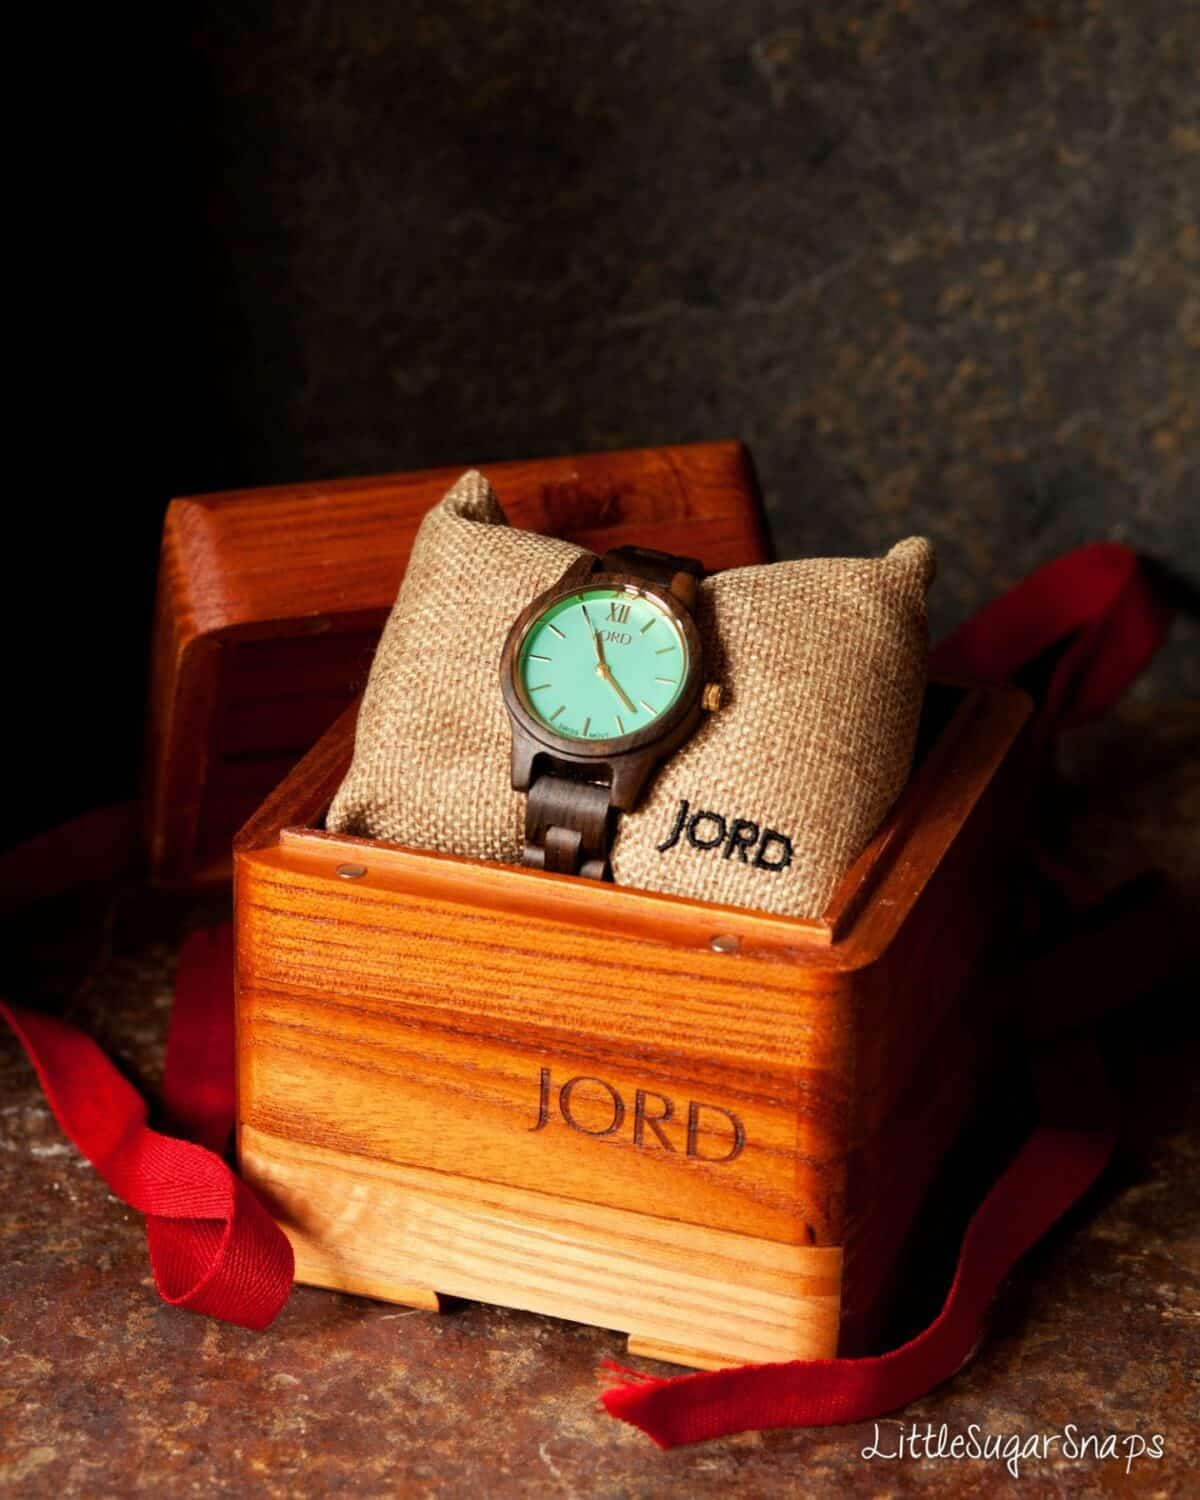 A wooden watch in a presentation box.